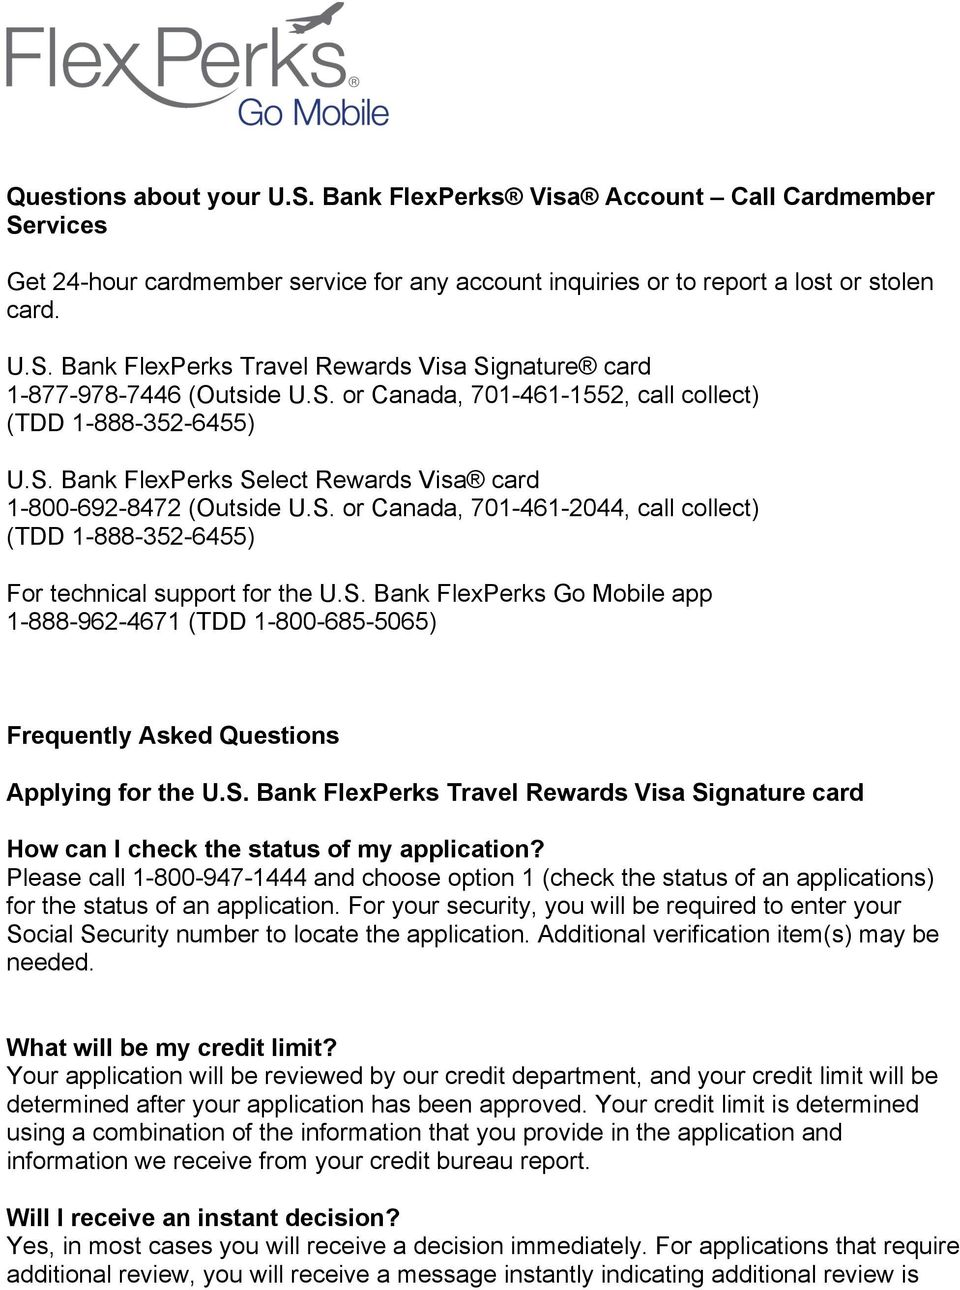 S. Bank FlexPerks Go Mobile app 1-888-962-4671 (TDD 1-800-685-5065) Frequently Asked Questions Applying for the U.S. Bank FlexPerks Travel Rewards Visa Signature card How can I check the status of my application?